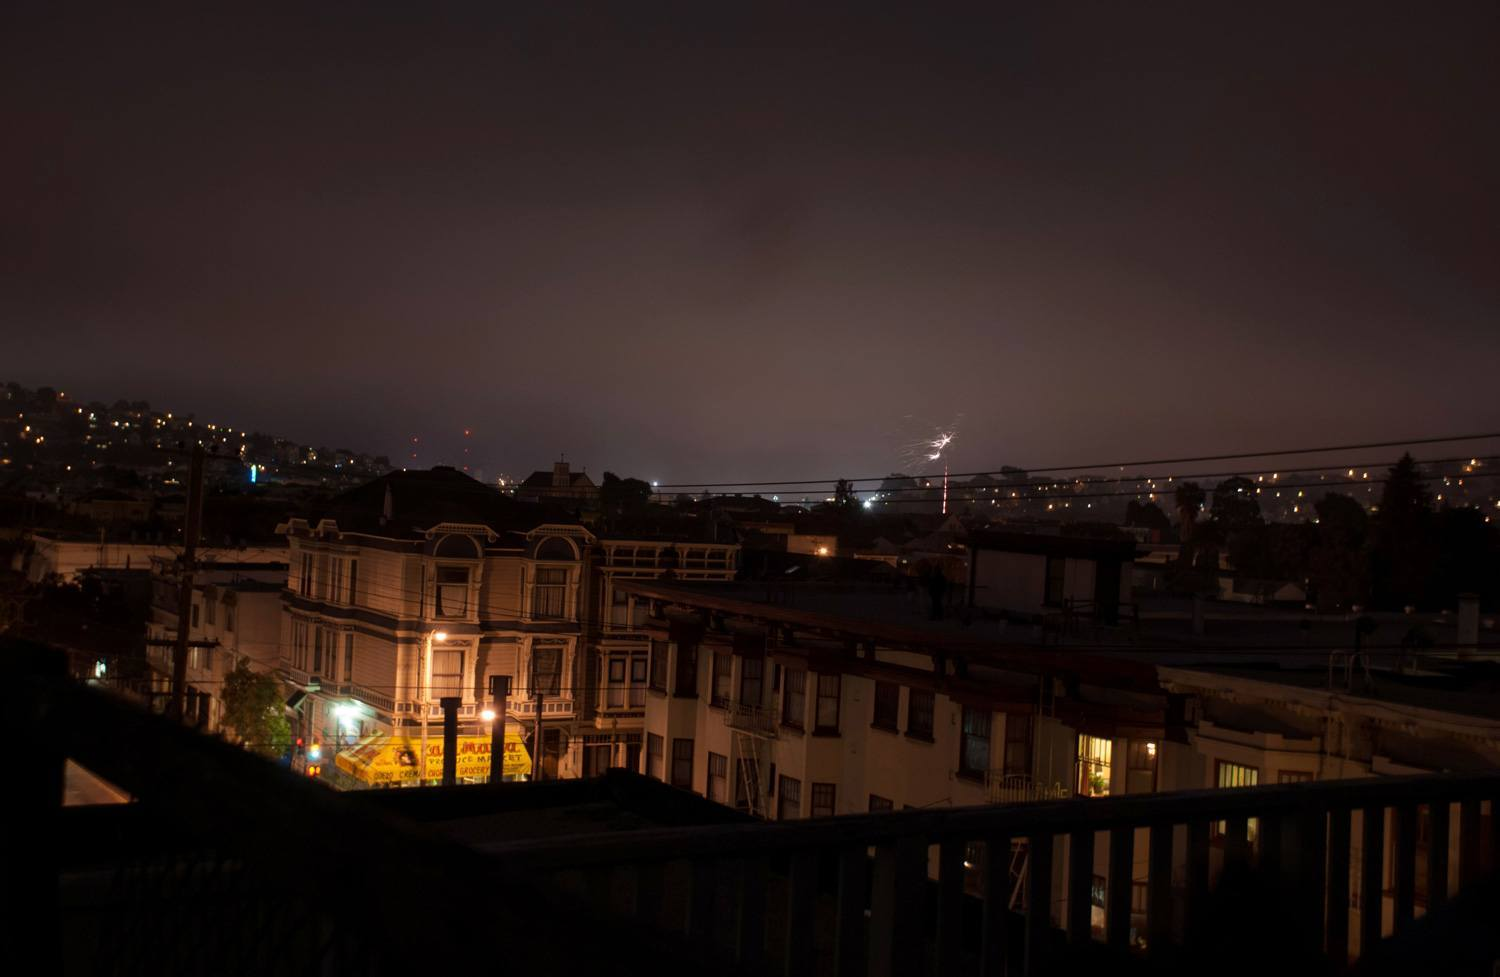 The Mission lit up at night